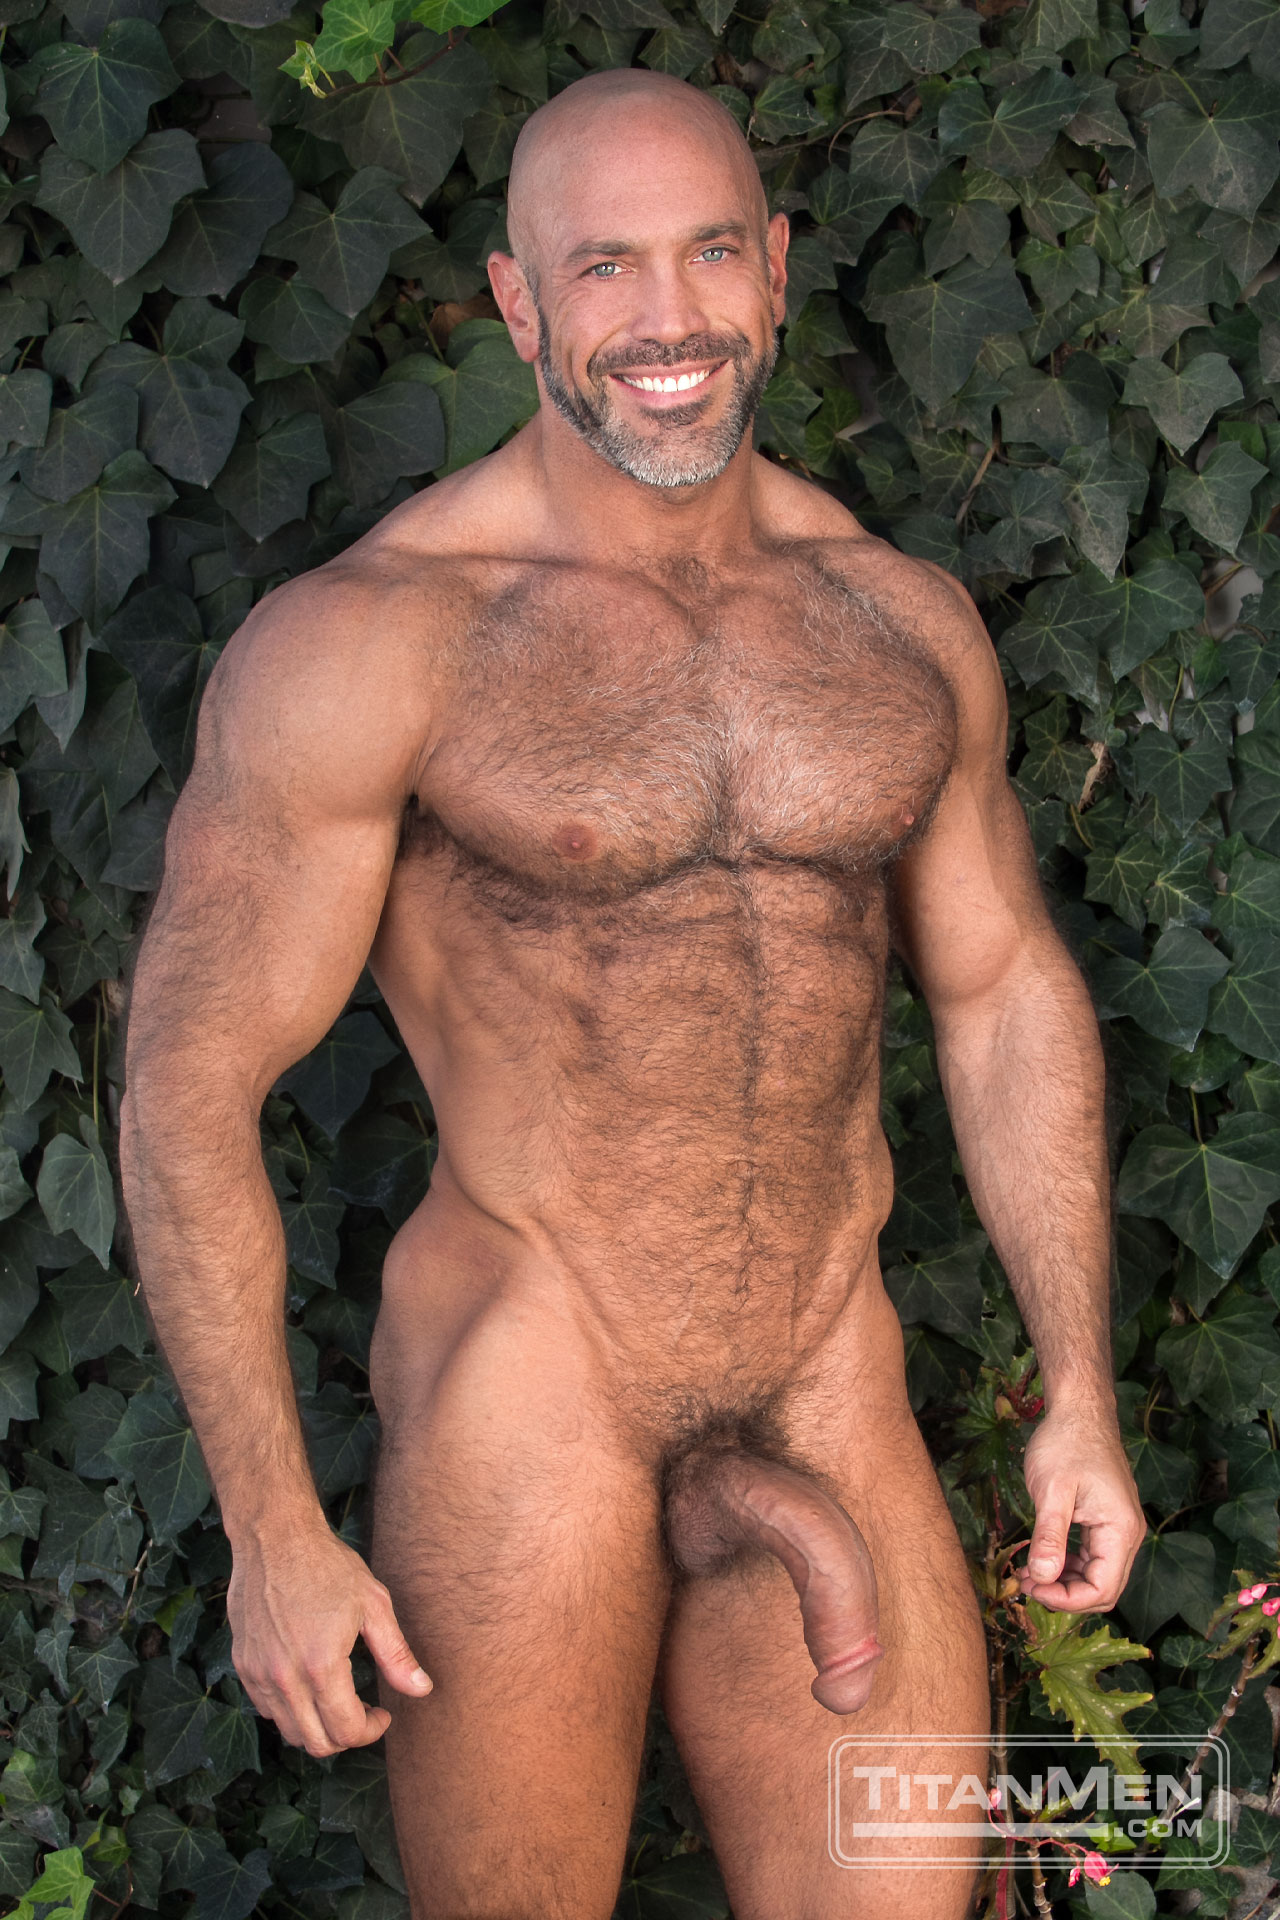 Titan men muscle xxx